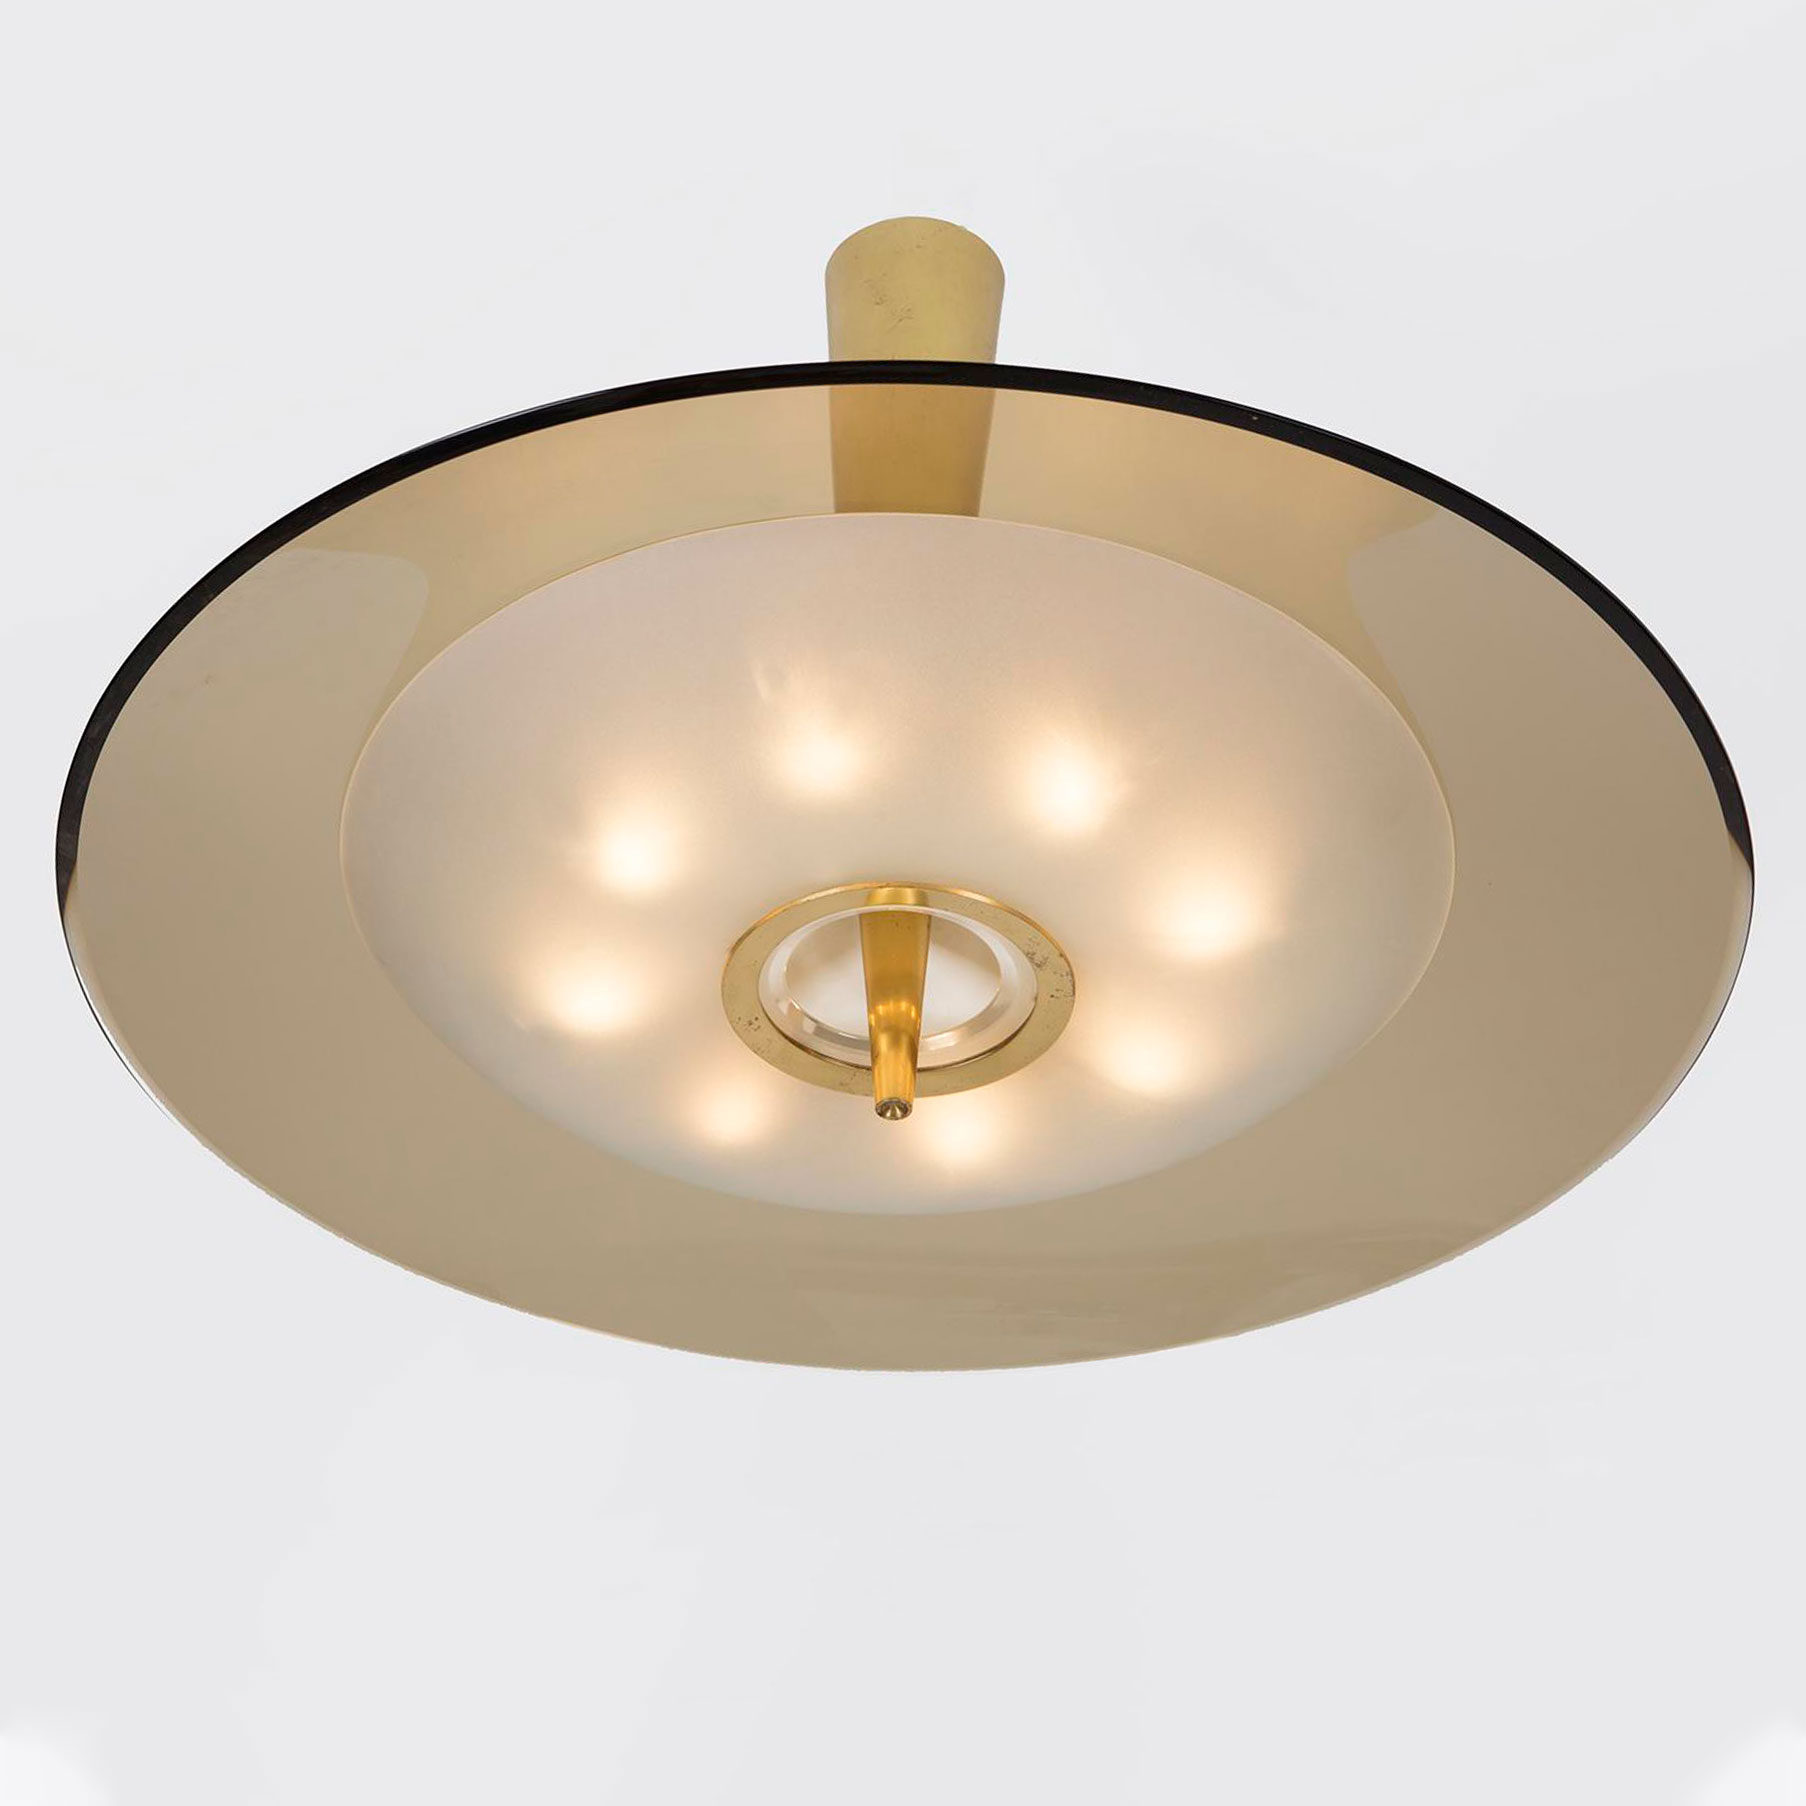 Max Ingrand  |                                  Ceiling light, model 1462